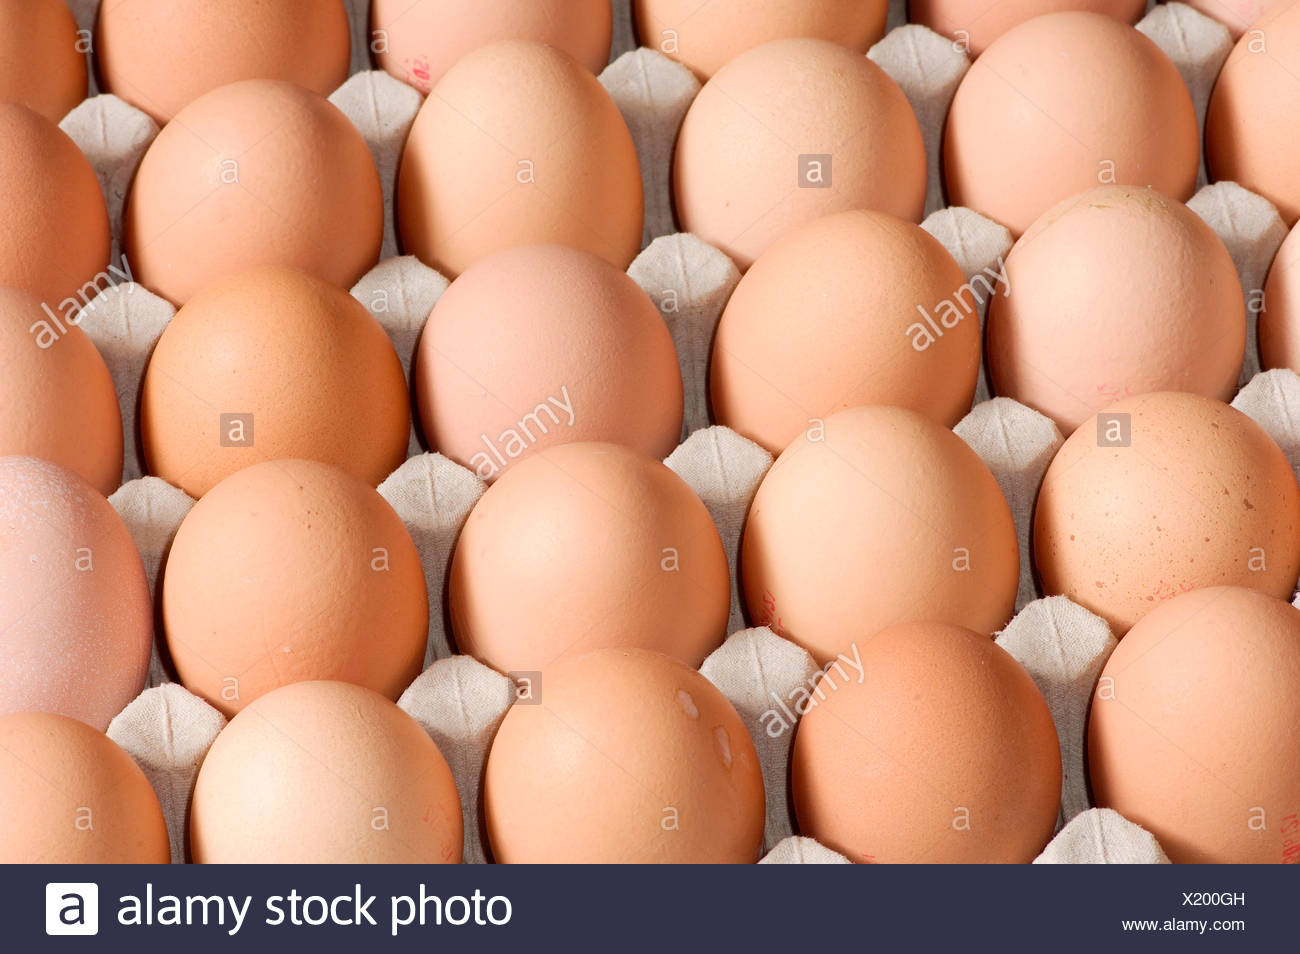 Brown eggs in an egg carton - Stock Image